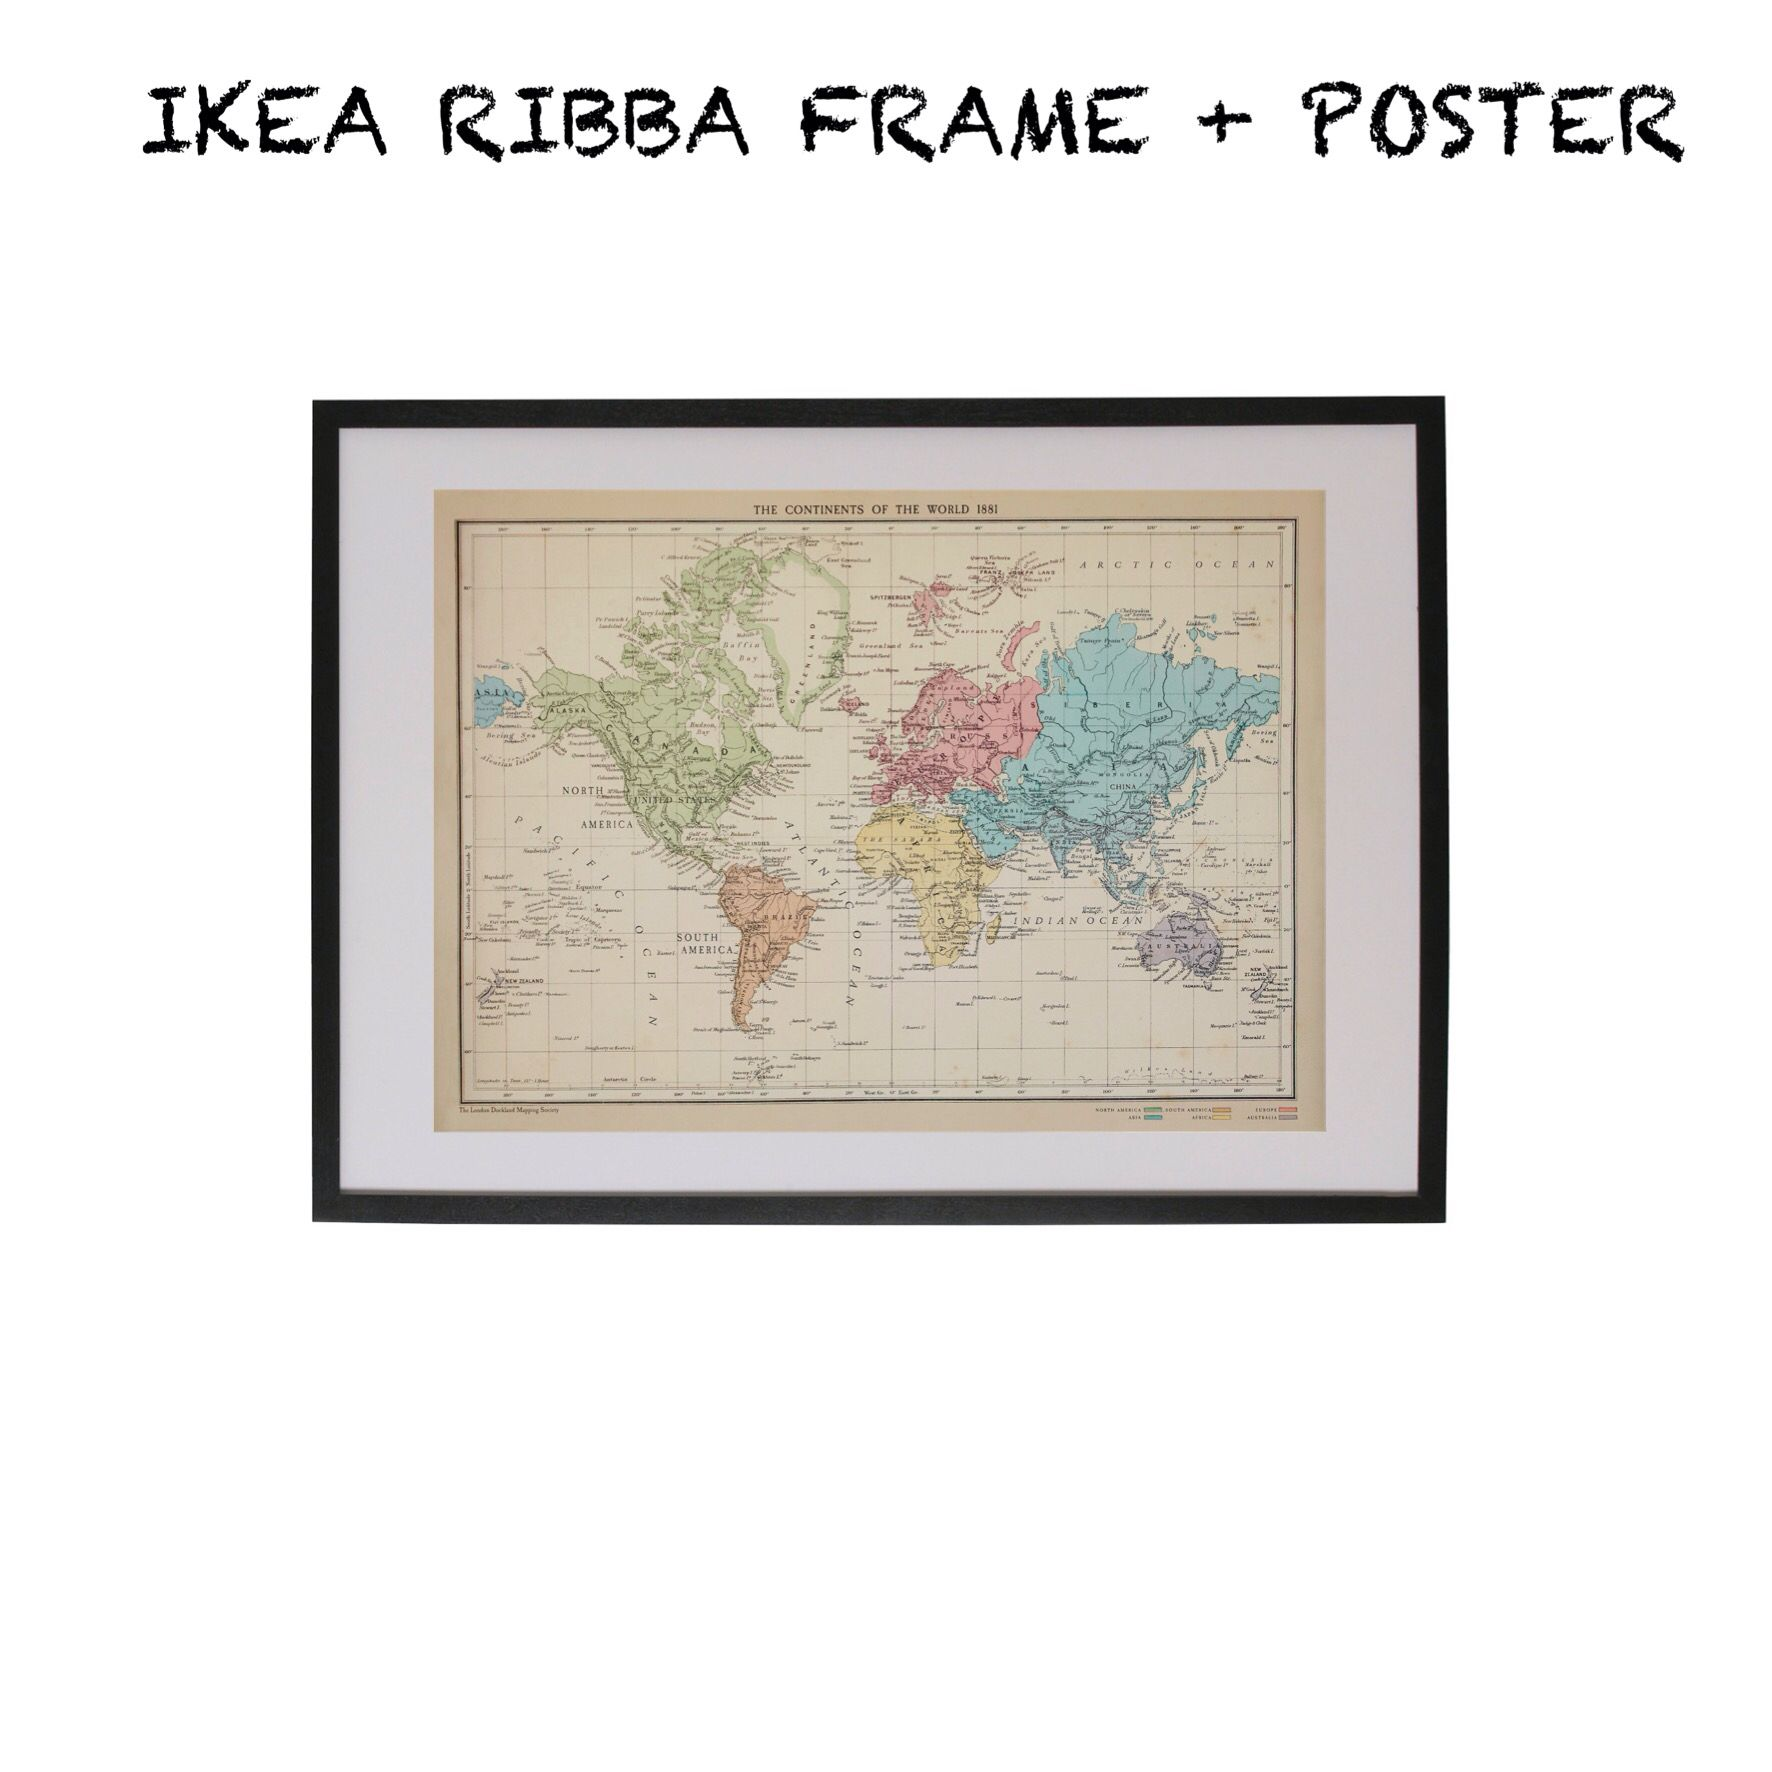 Ikea ribba frame world map poster decoraties pinterest ikea ribba frame world map poster gumiabroncs Gallery